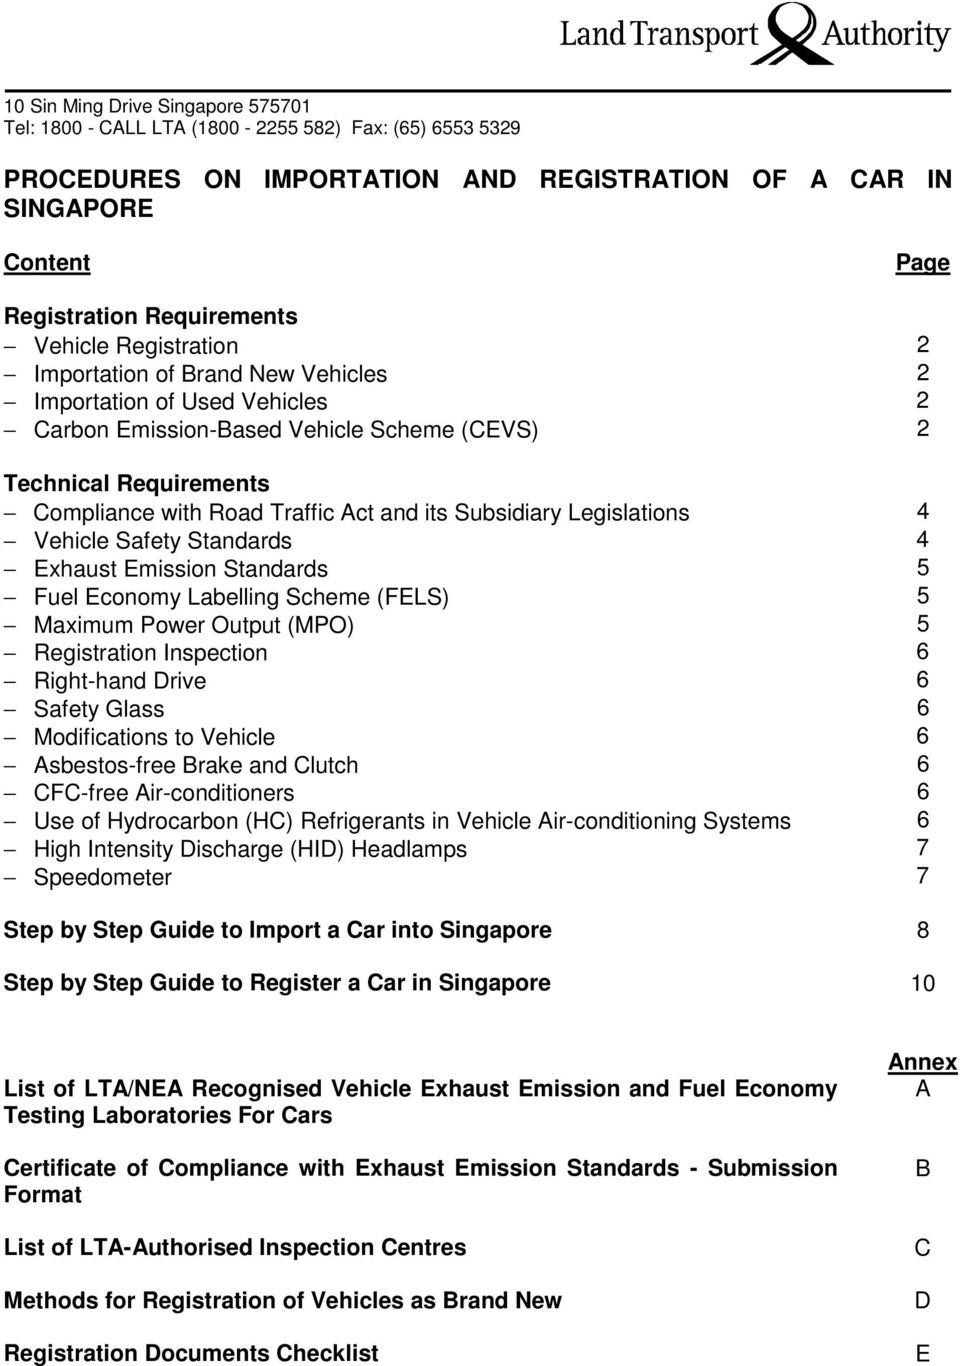 PROCEDURES ON IMPORTATION AND REGISTRATION OF A CAR IN SINGAPORE - PDF